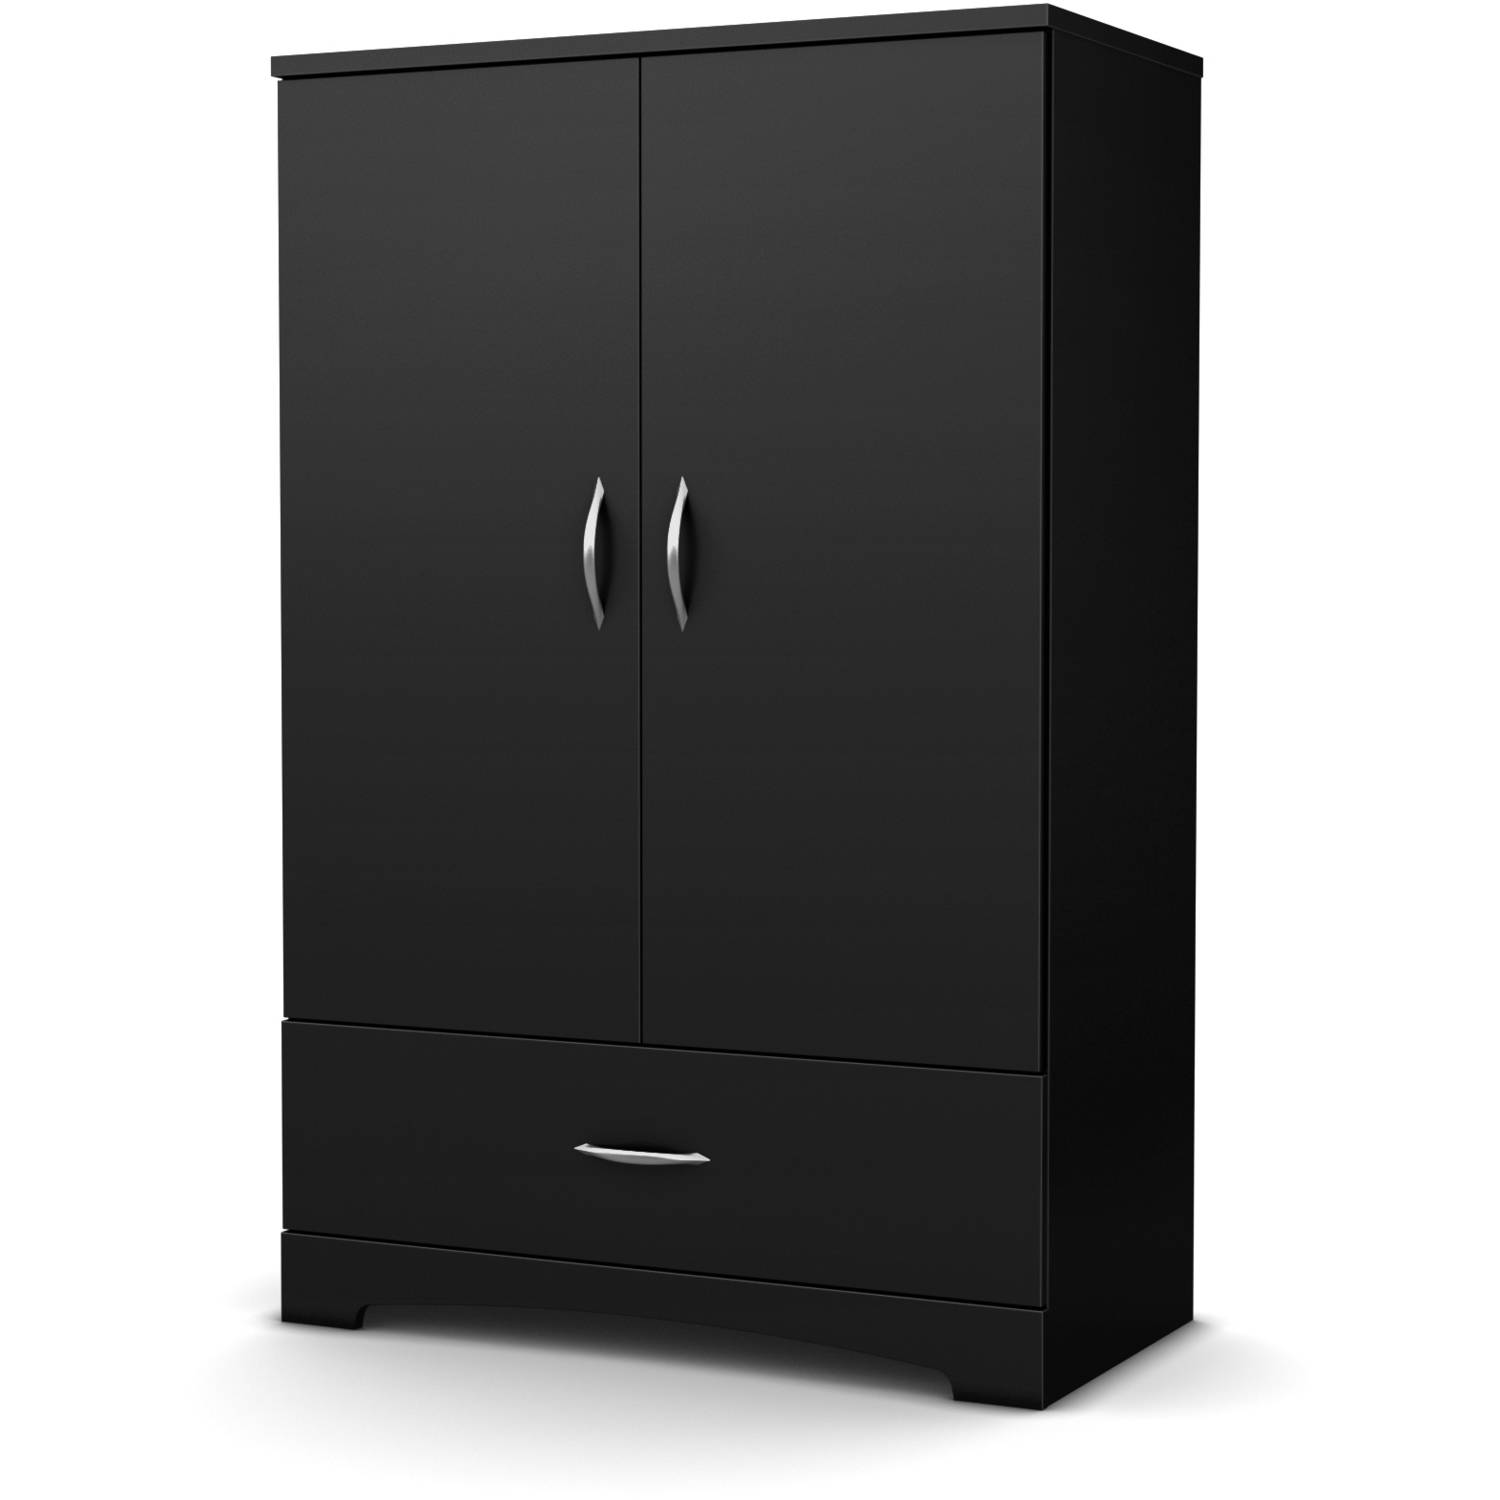 Best Of Walmart Armoire